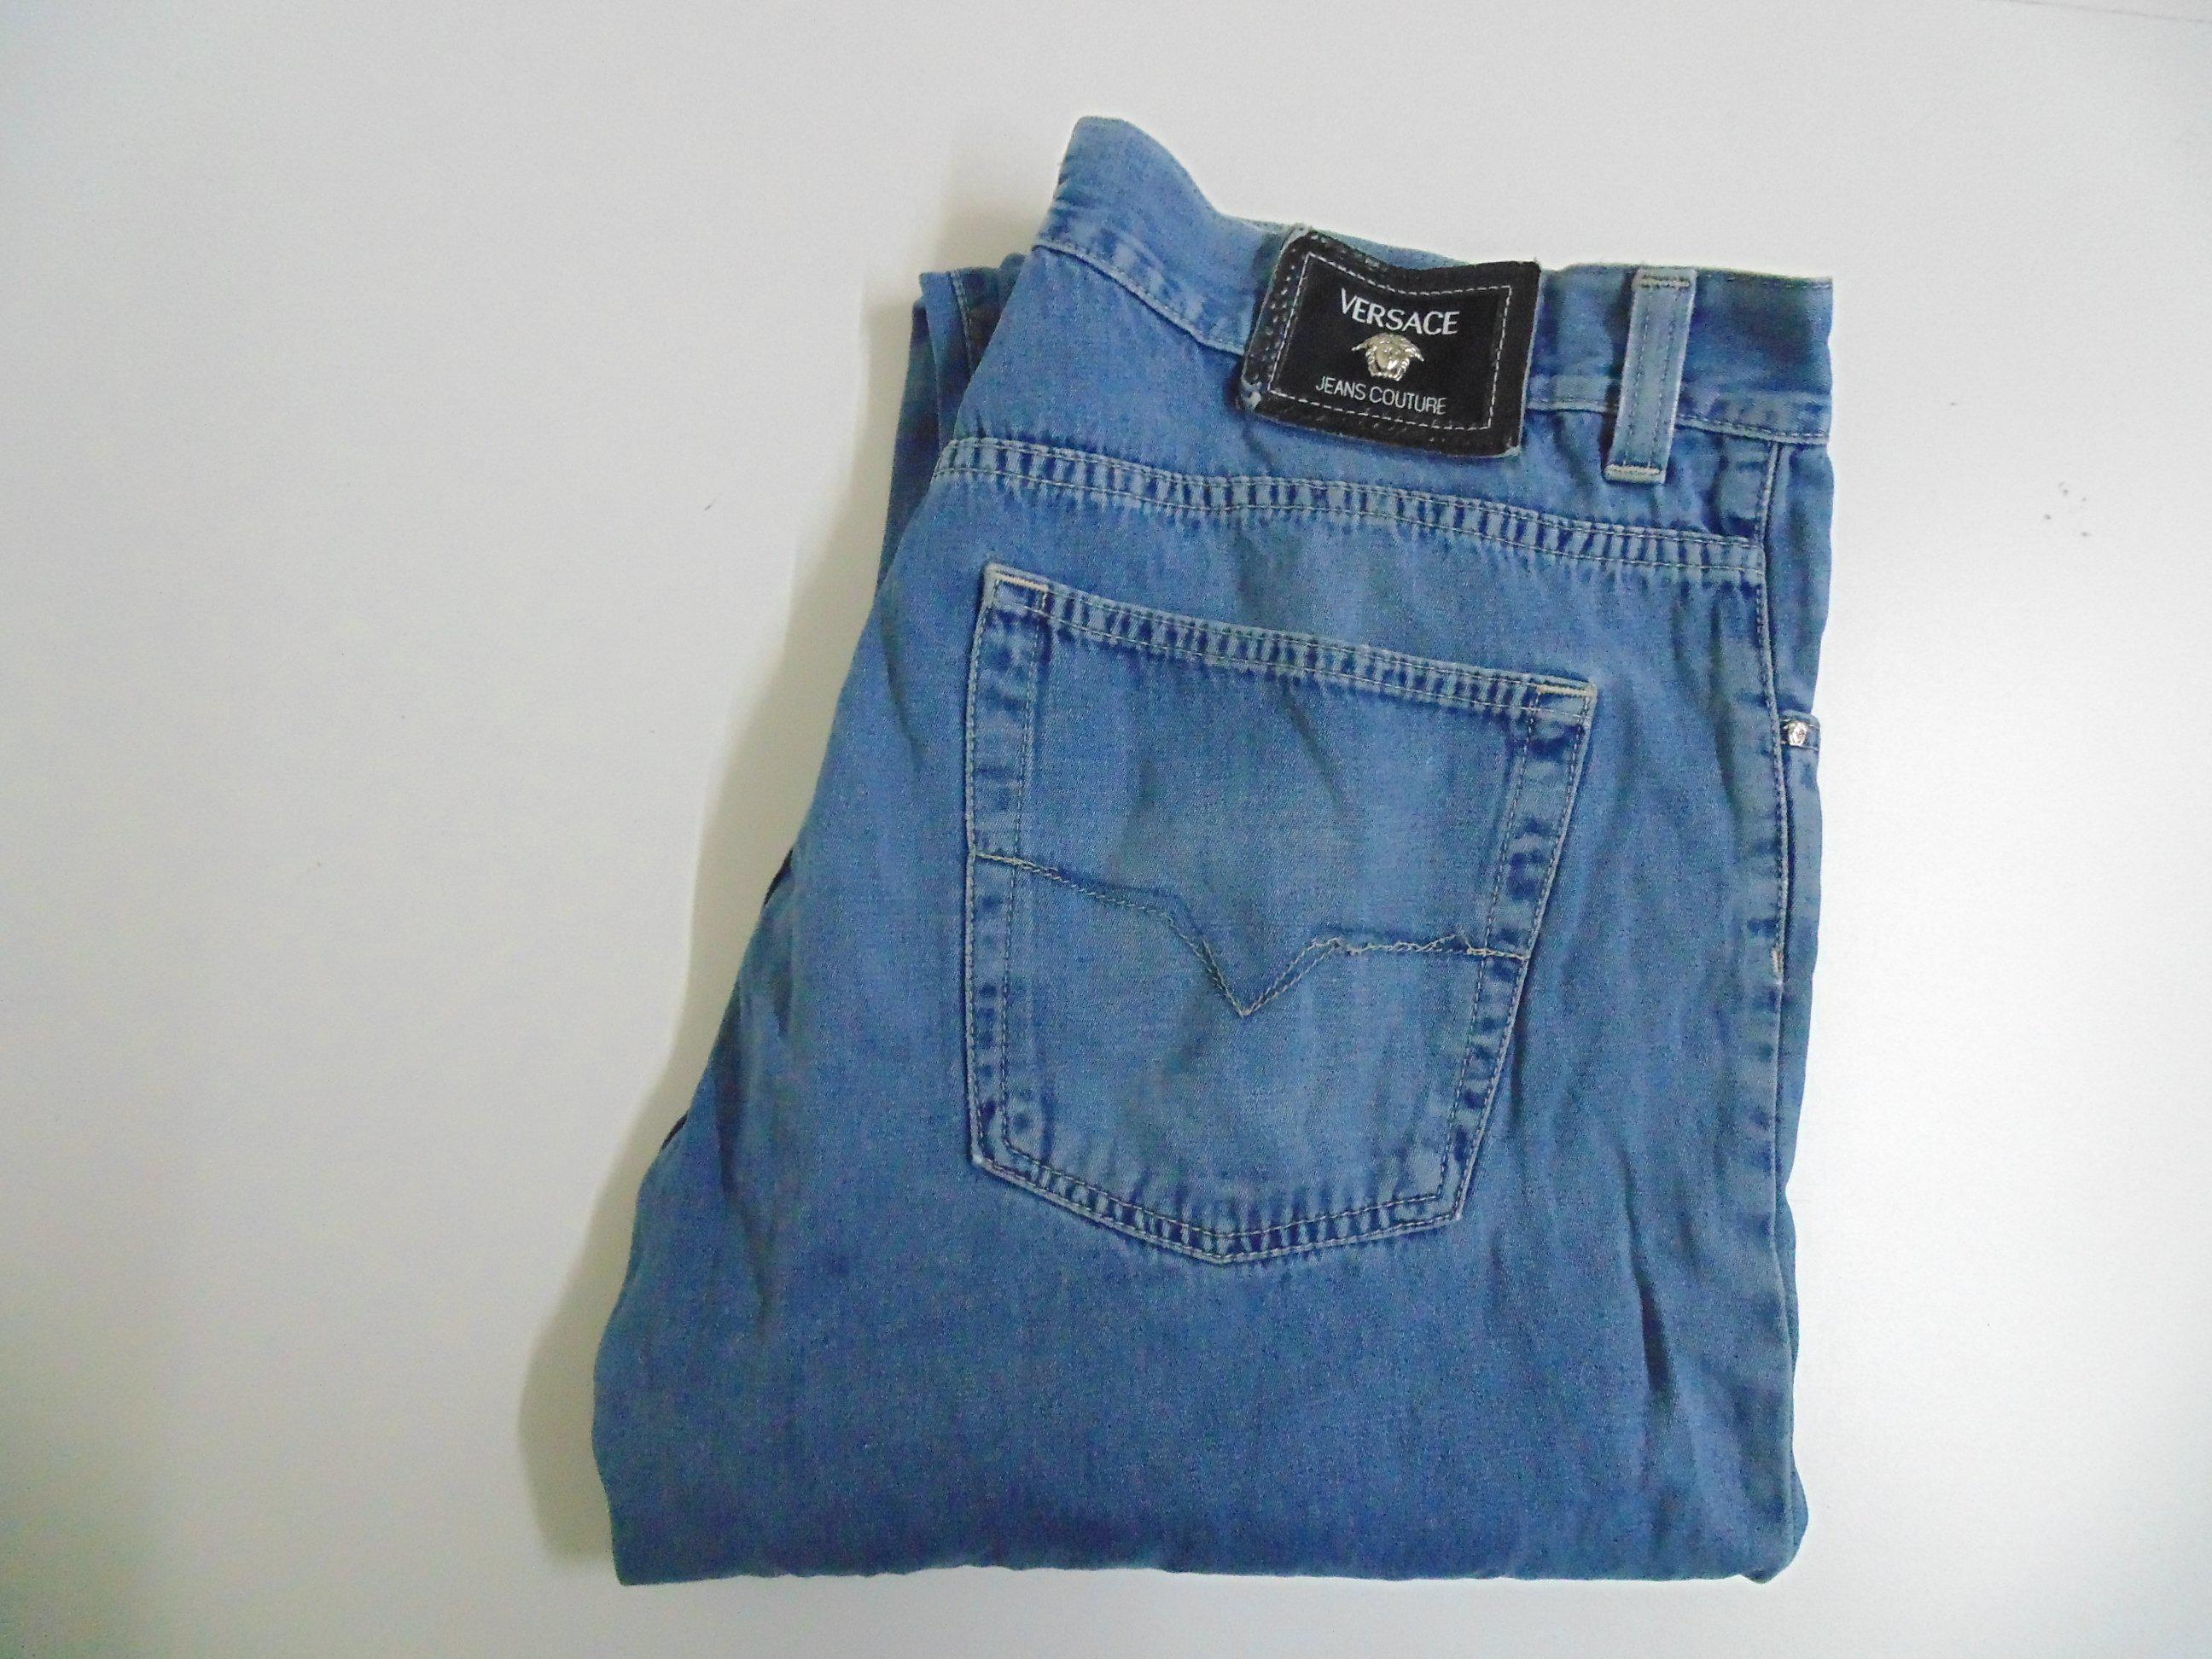 fce2f100 Vintage Versace Jeans and Shirts, Men's - Retro Online Shop - Classic  Clothing Crib